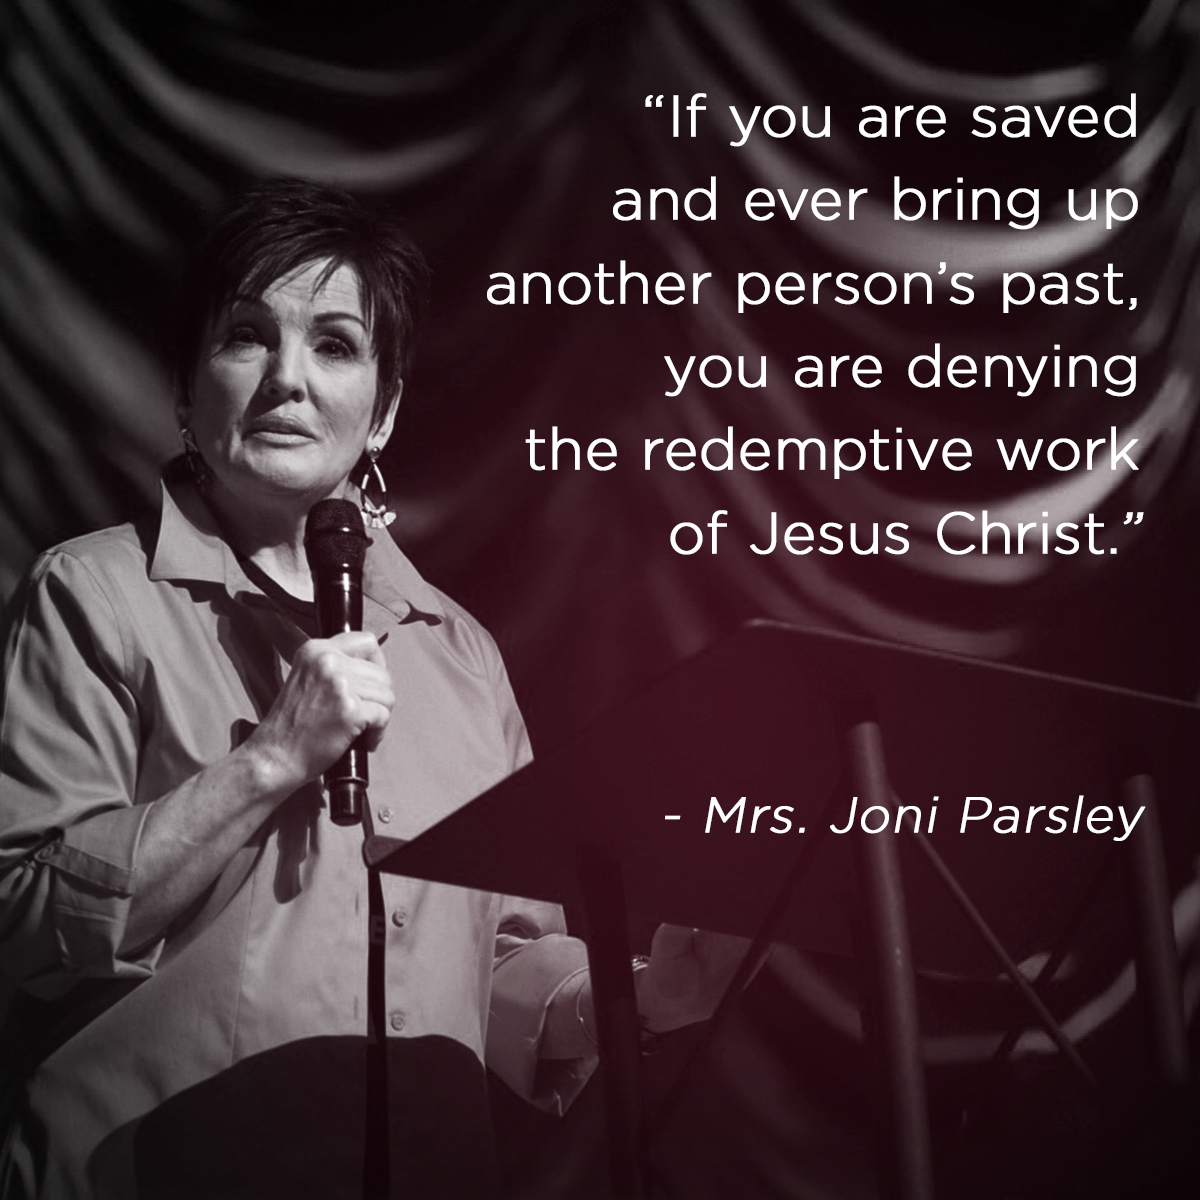 """If you are saved and ever bring up another person's past, you are denying the redemptive work of Jesus Christ."" – Mrs. Joni Parsley"